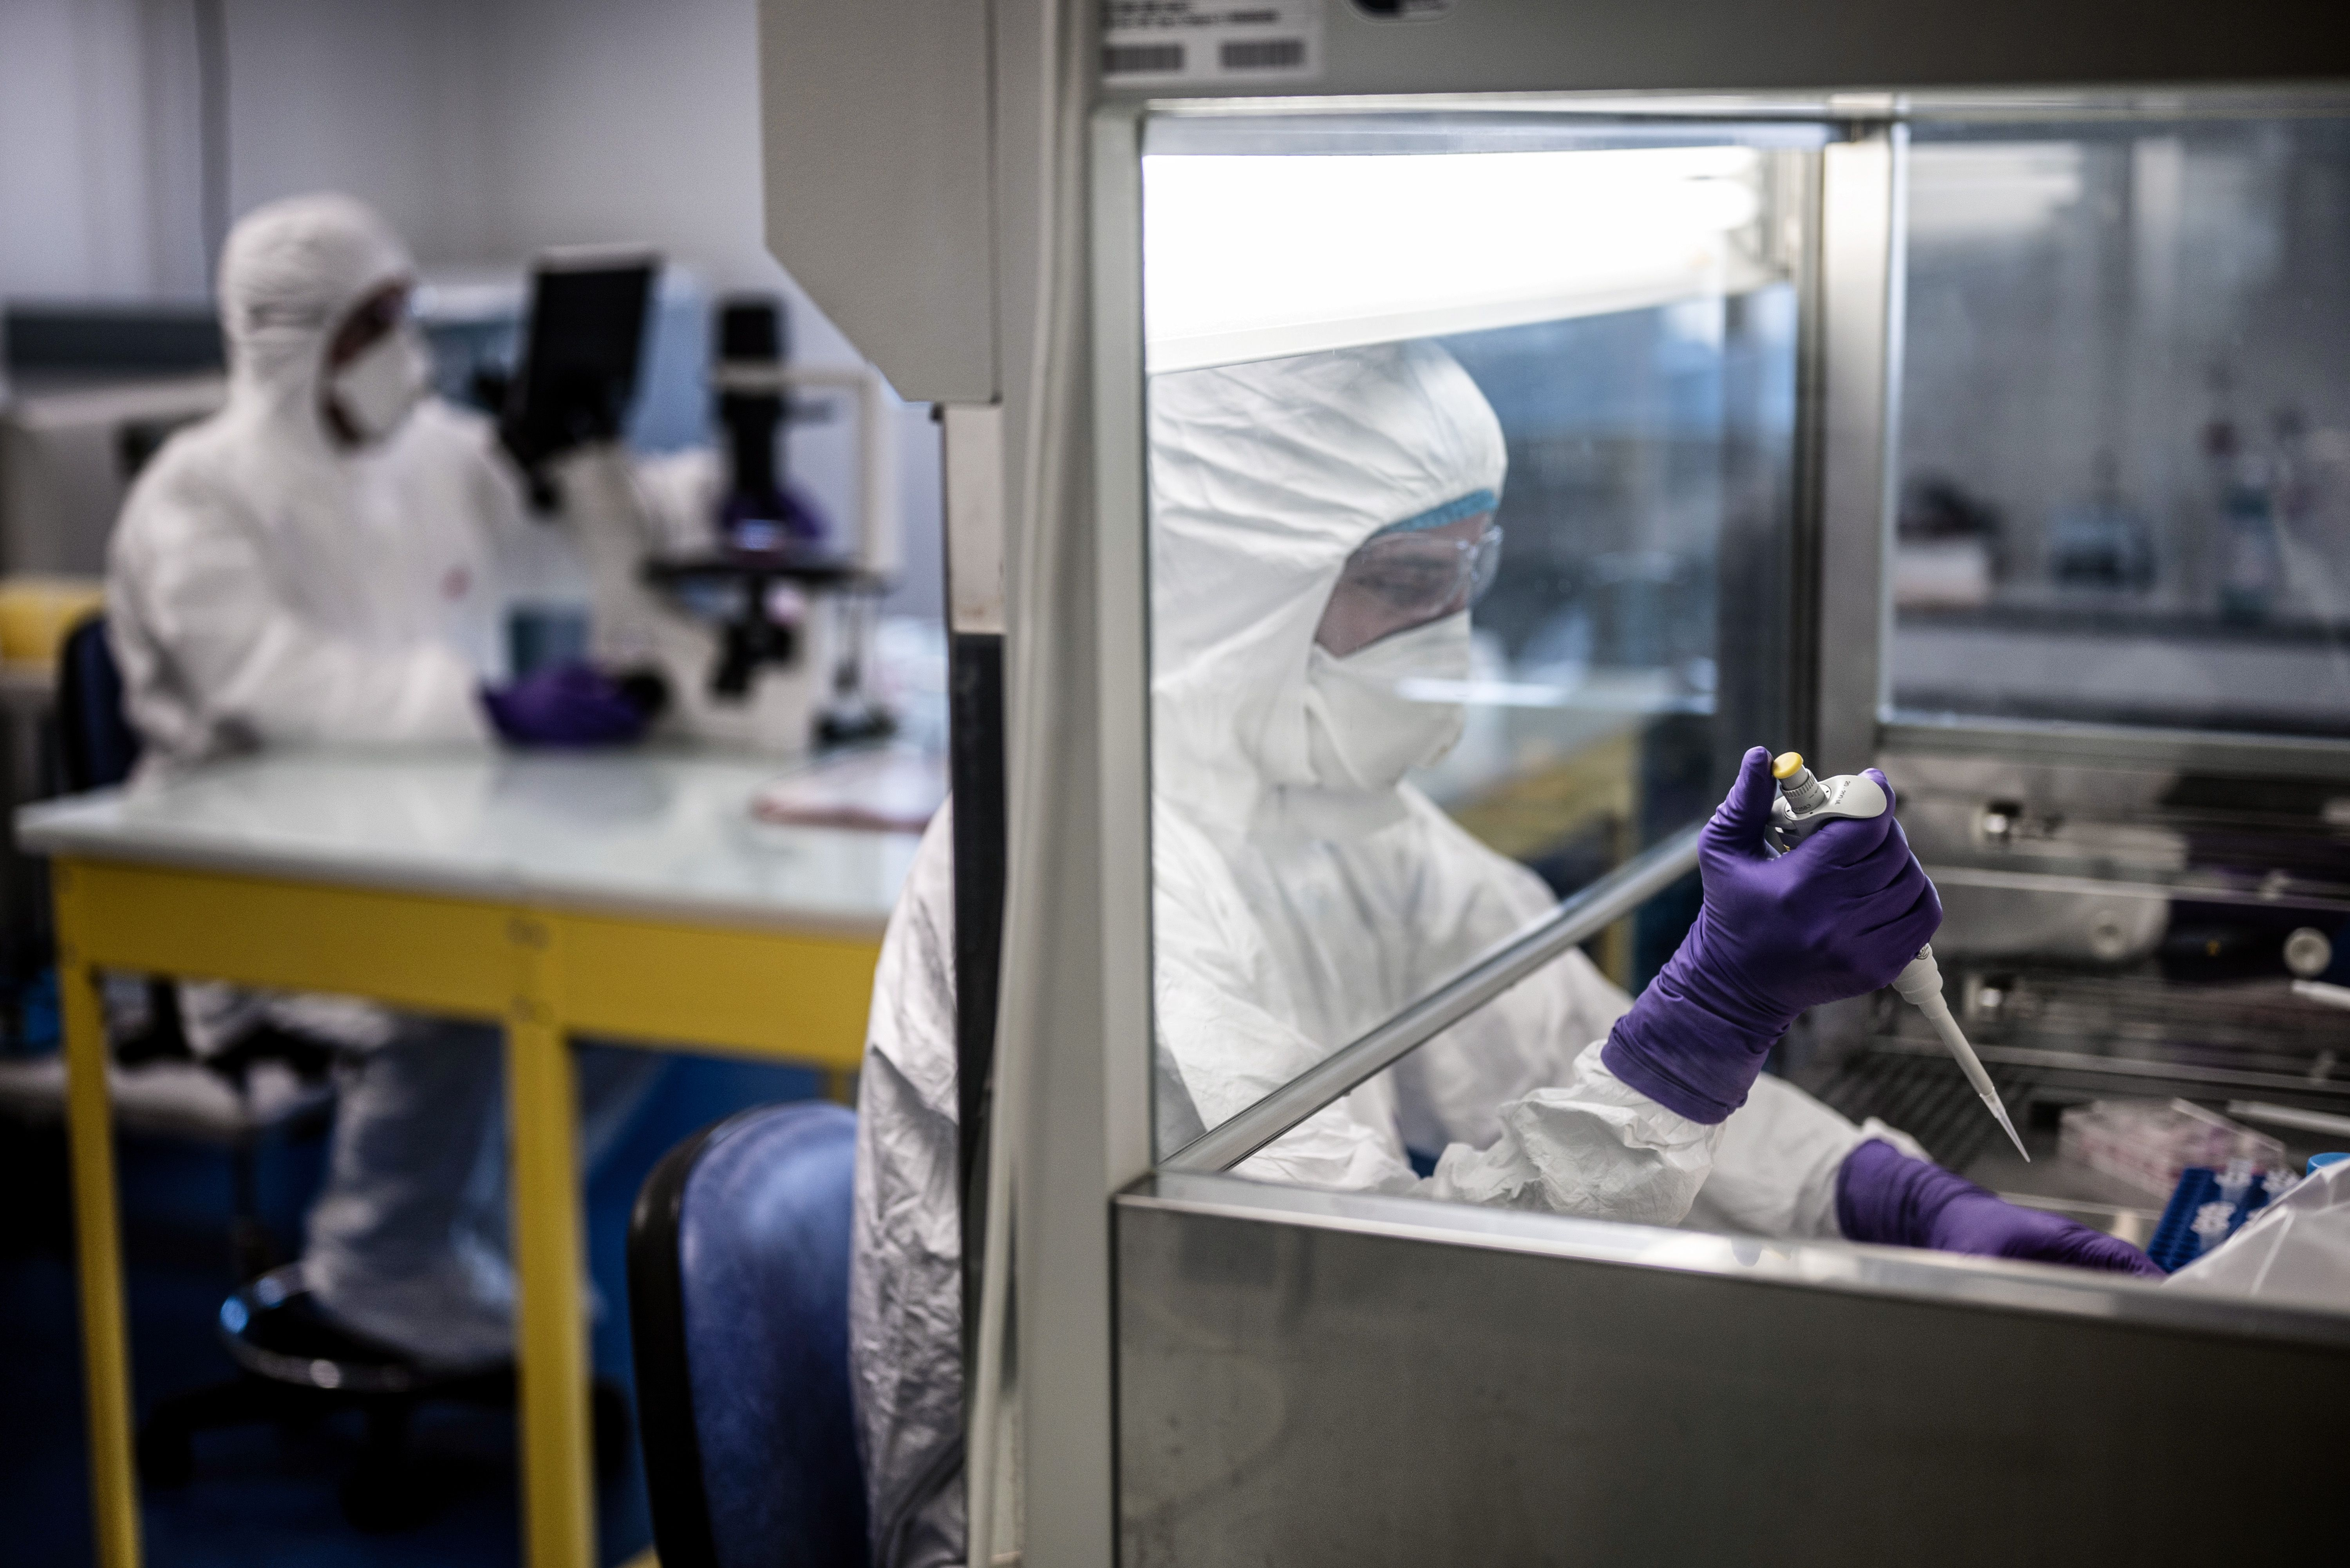 Scientists are at work in a university laboratory on Feb. 5, 2020 as they try to find an effective treatment against COVID-19, the novel coronavirus that has killed 1,100 people.